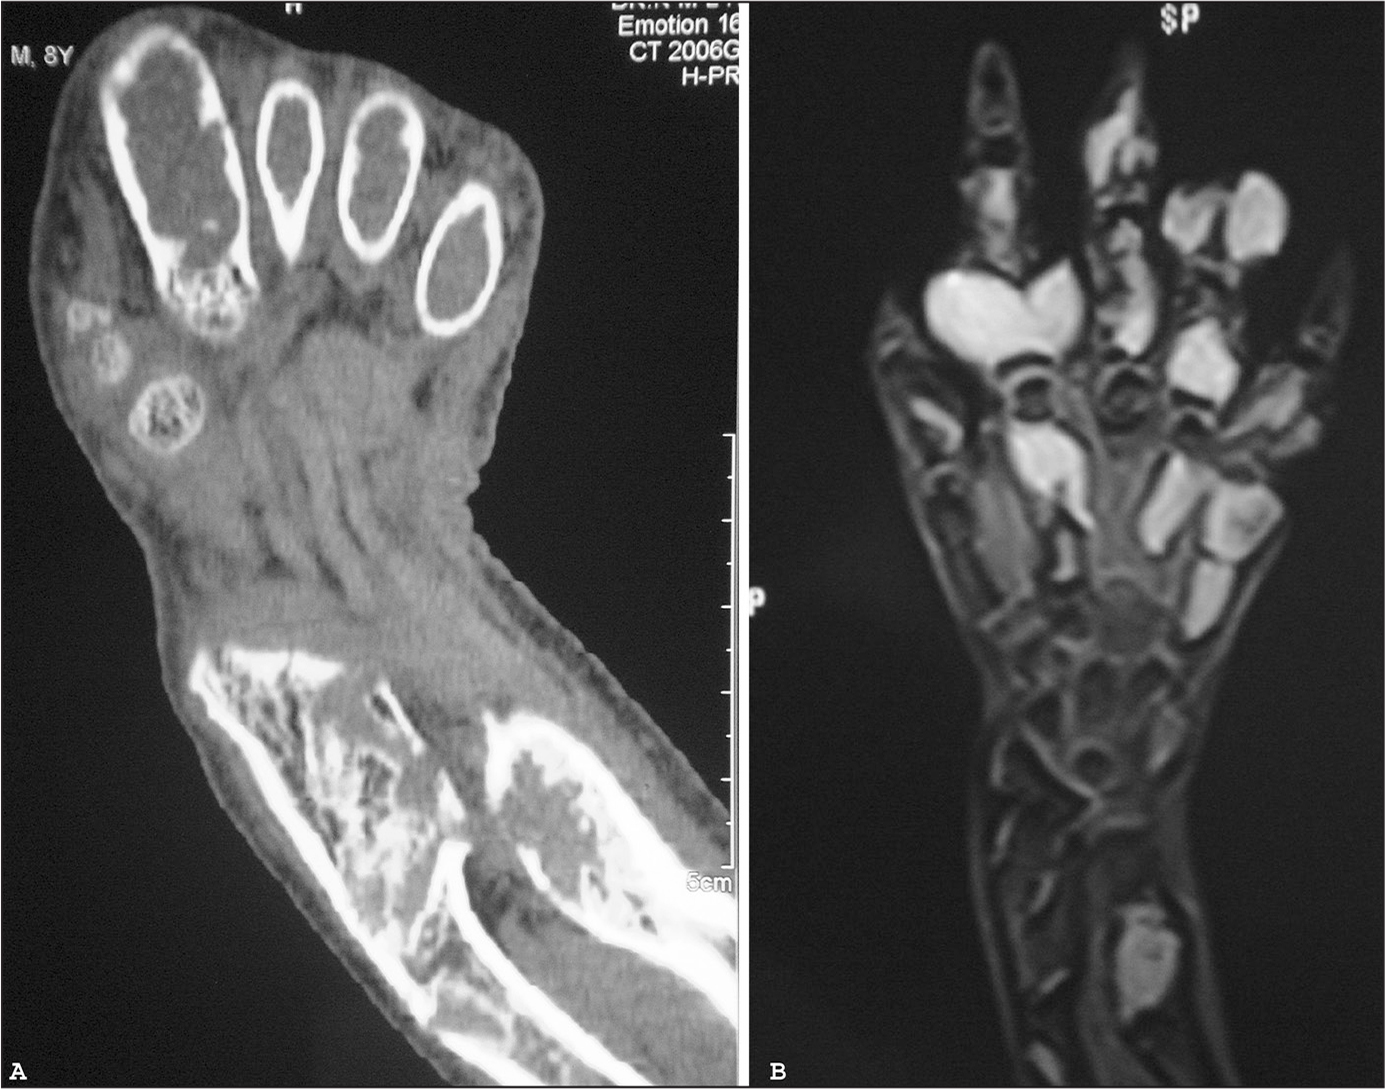 Coronal reconstructed computed tomography scan (A) and T2-weighted magnetic resonance image (B) of the right hand confirming the presence of multiple well-defined cystic lesions. No associated soft tissue component is seen. Lesions show hyperintense signal on the T2-weighted image.